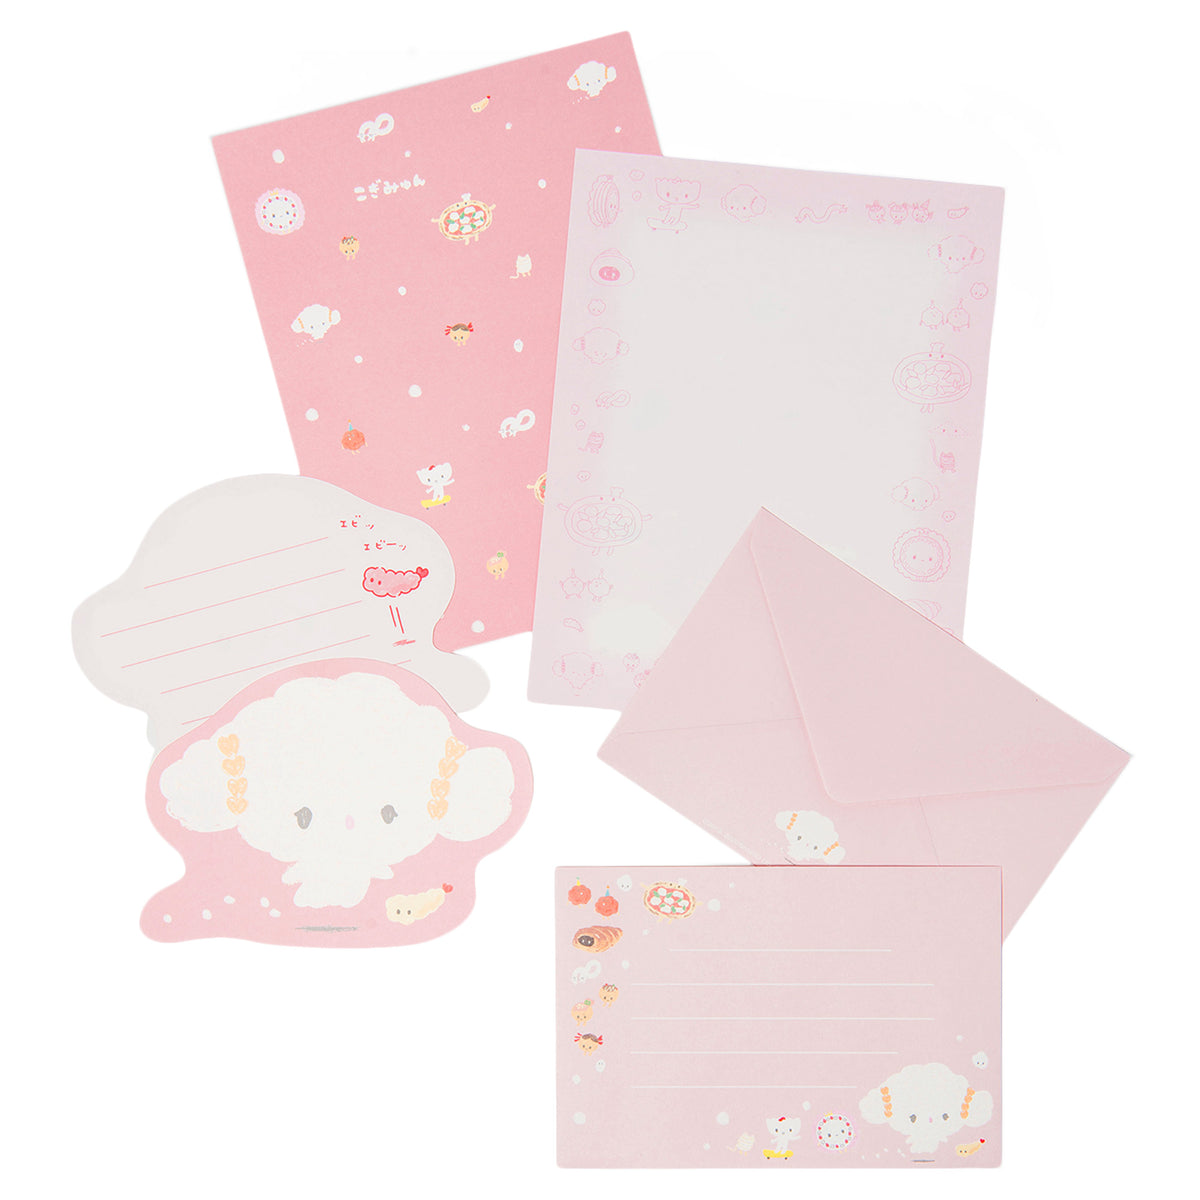 Cogimyun Diecut Letter Set Friends